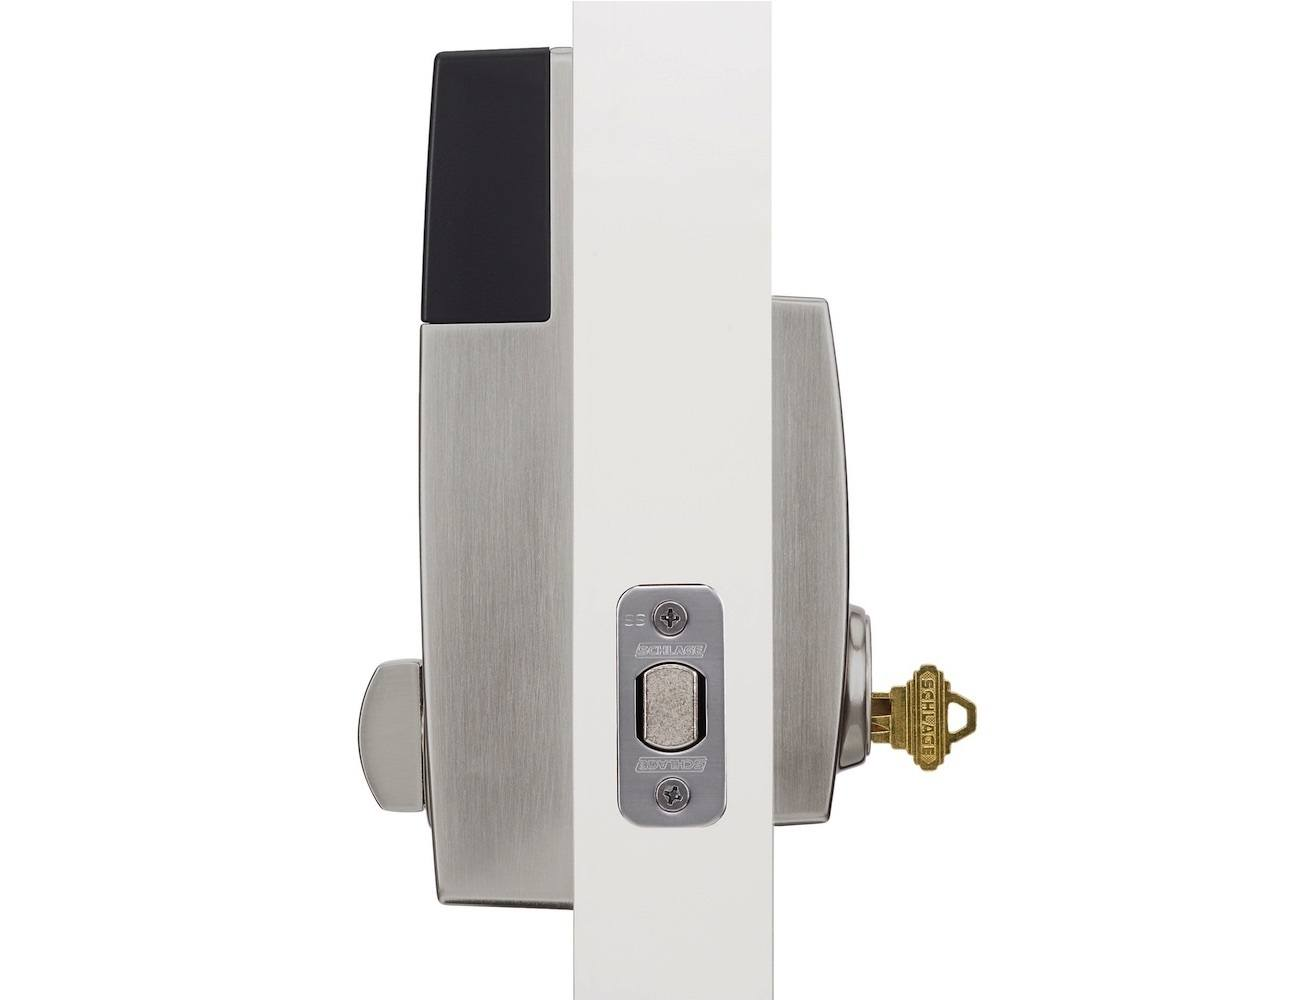 Schlage Sense Smart Deadbolt With Century Trim 187 Gadget Flow